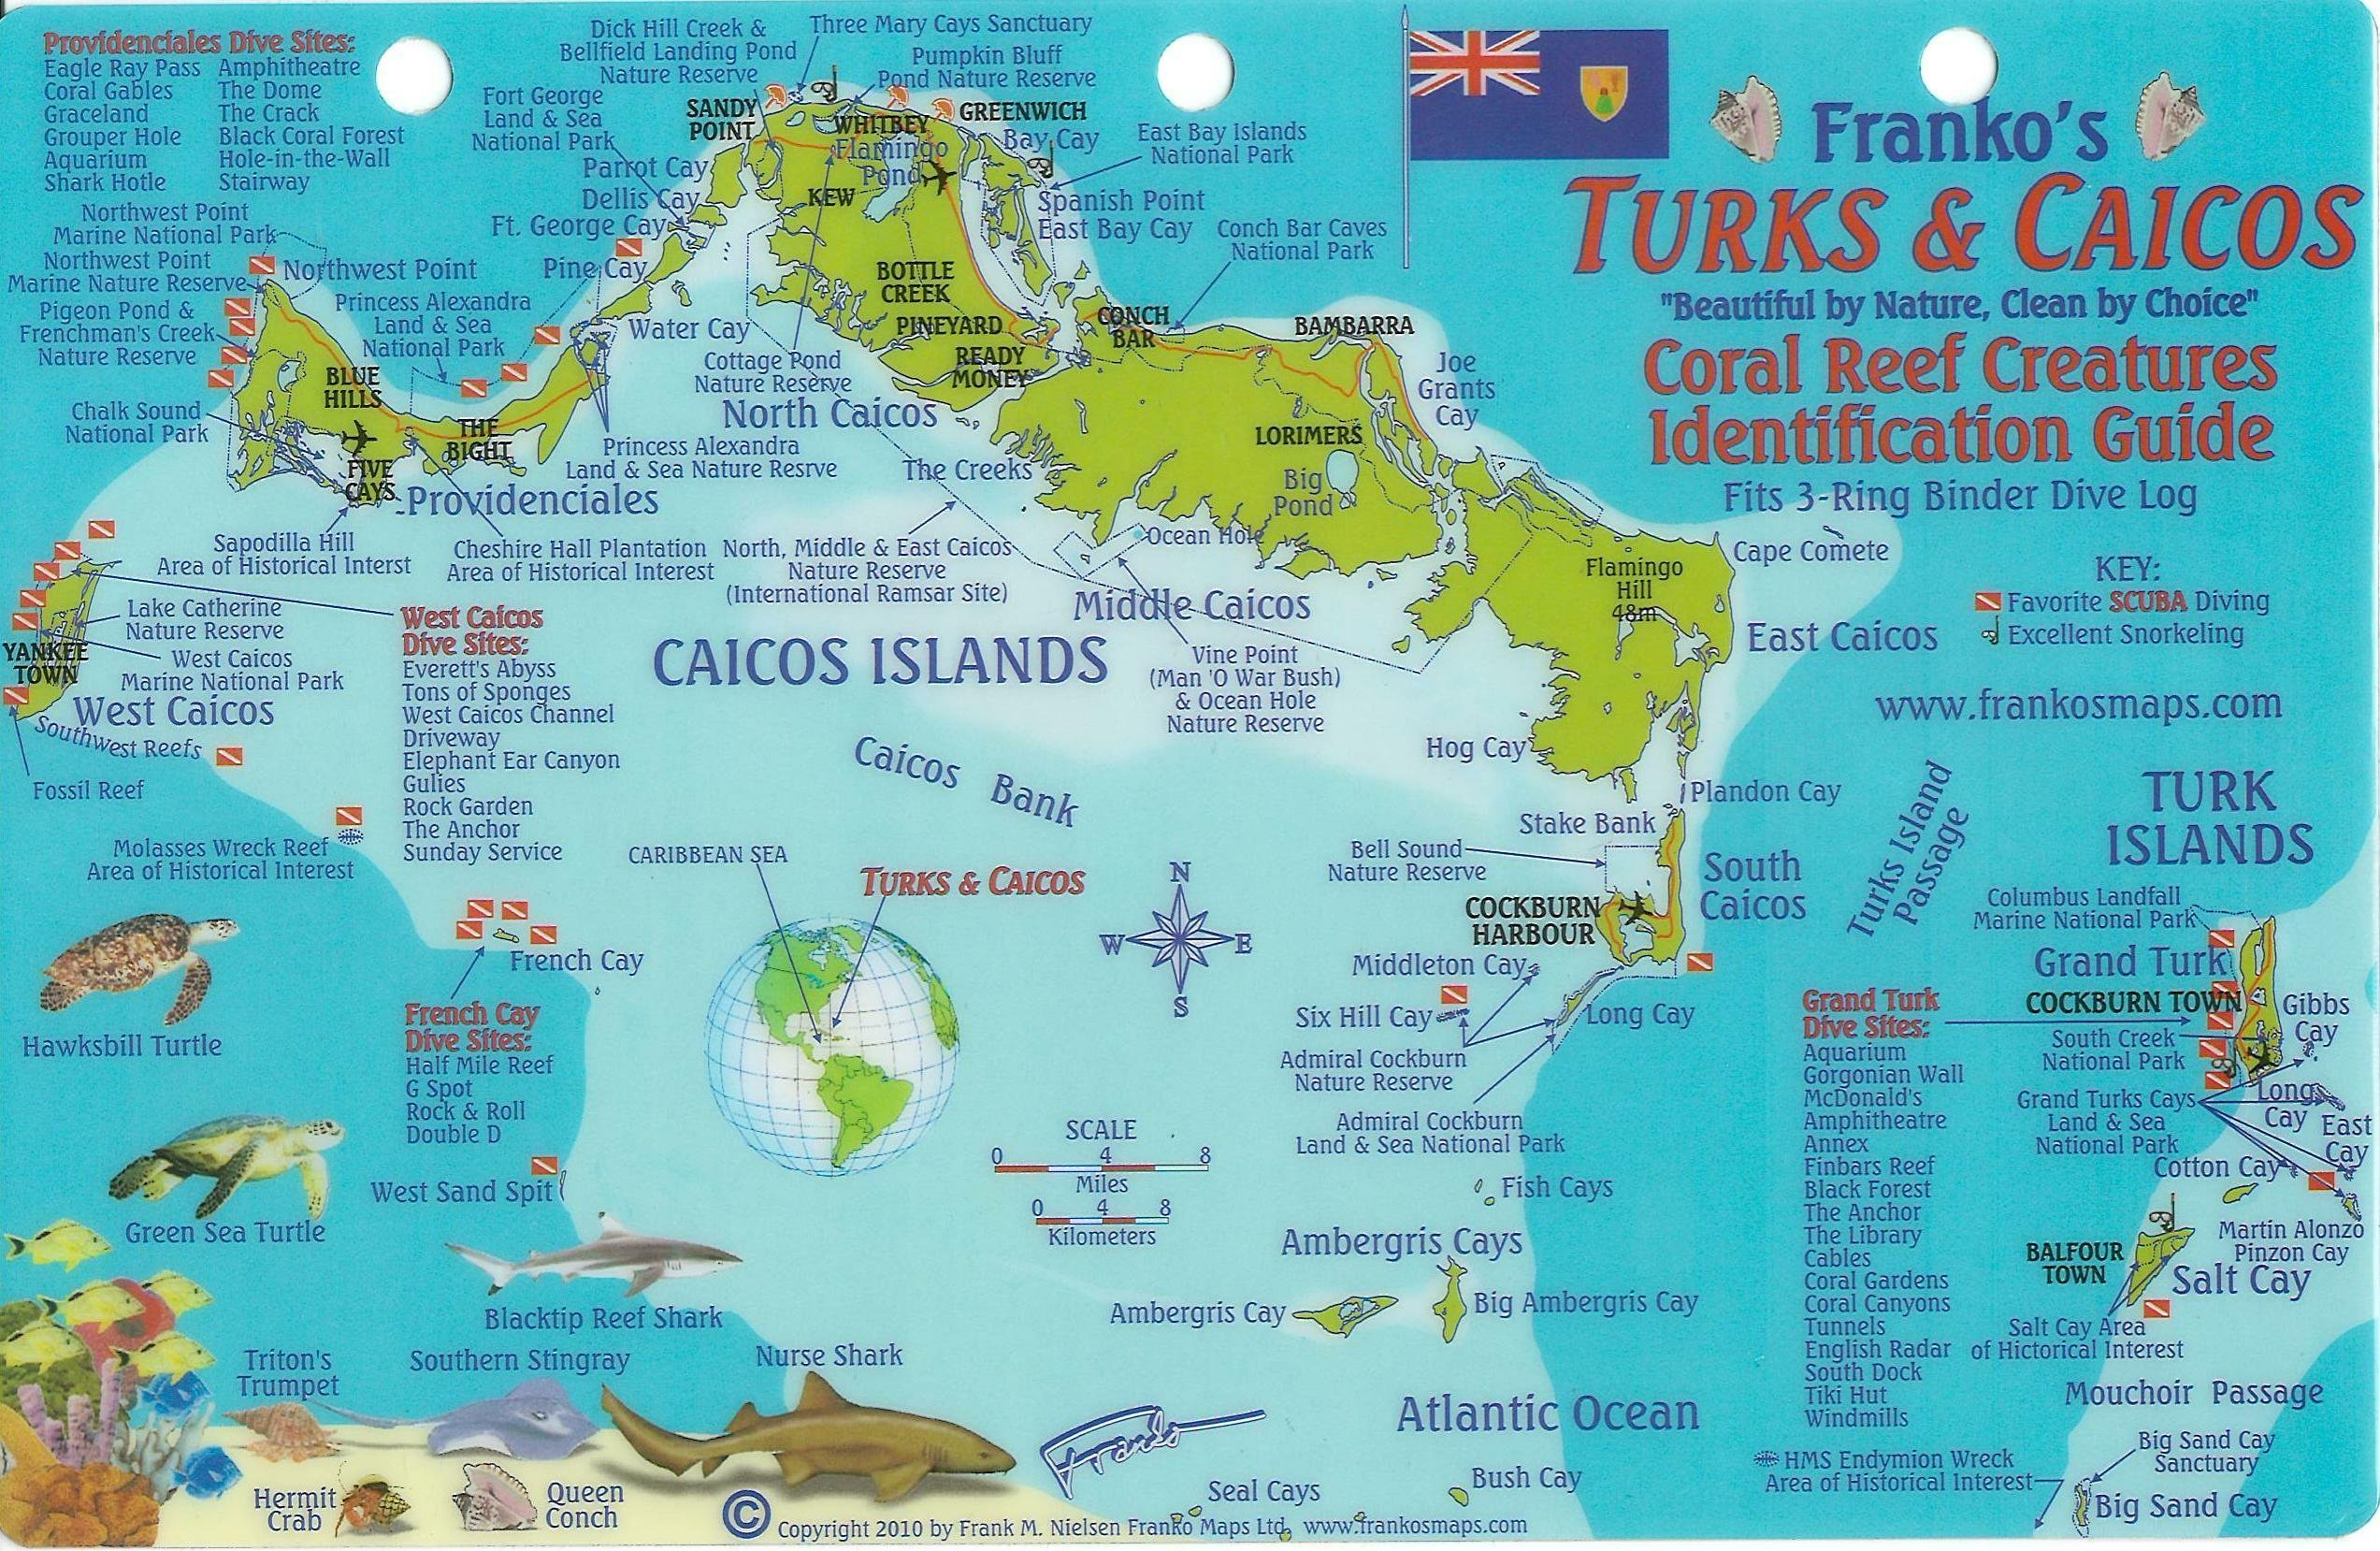 Turks And Caicos Map Turks & Caicos Dive Map & Reef Creatures Guide Franko Maps  Turks And Caicos Map